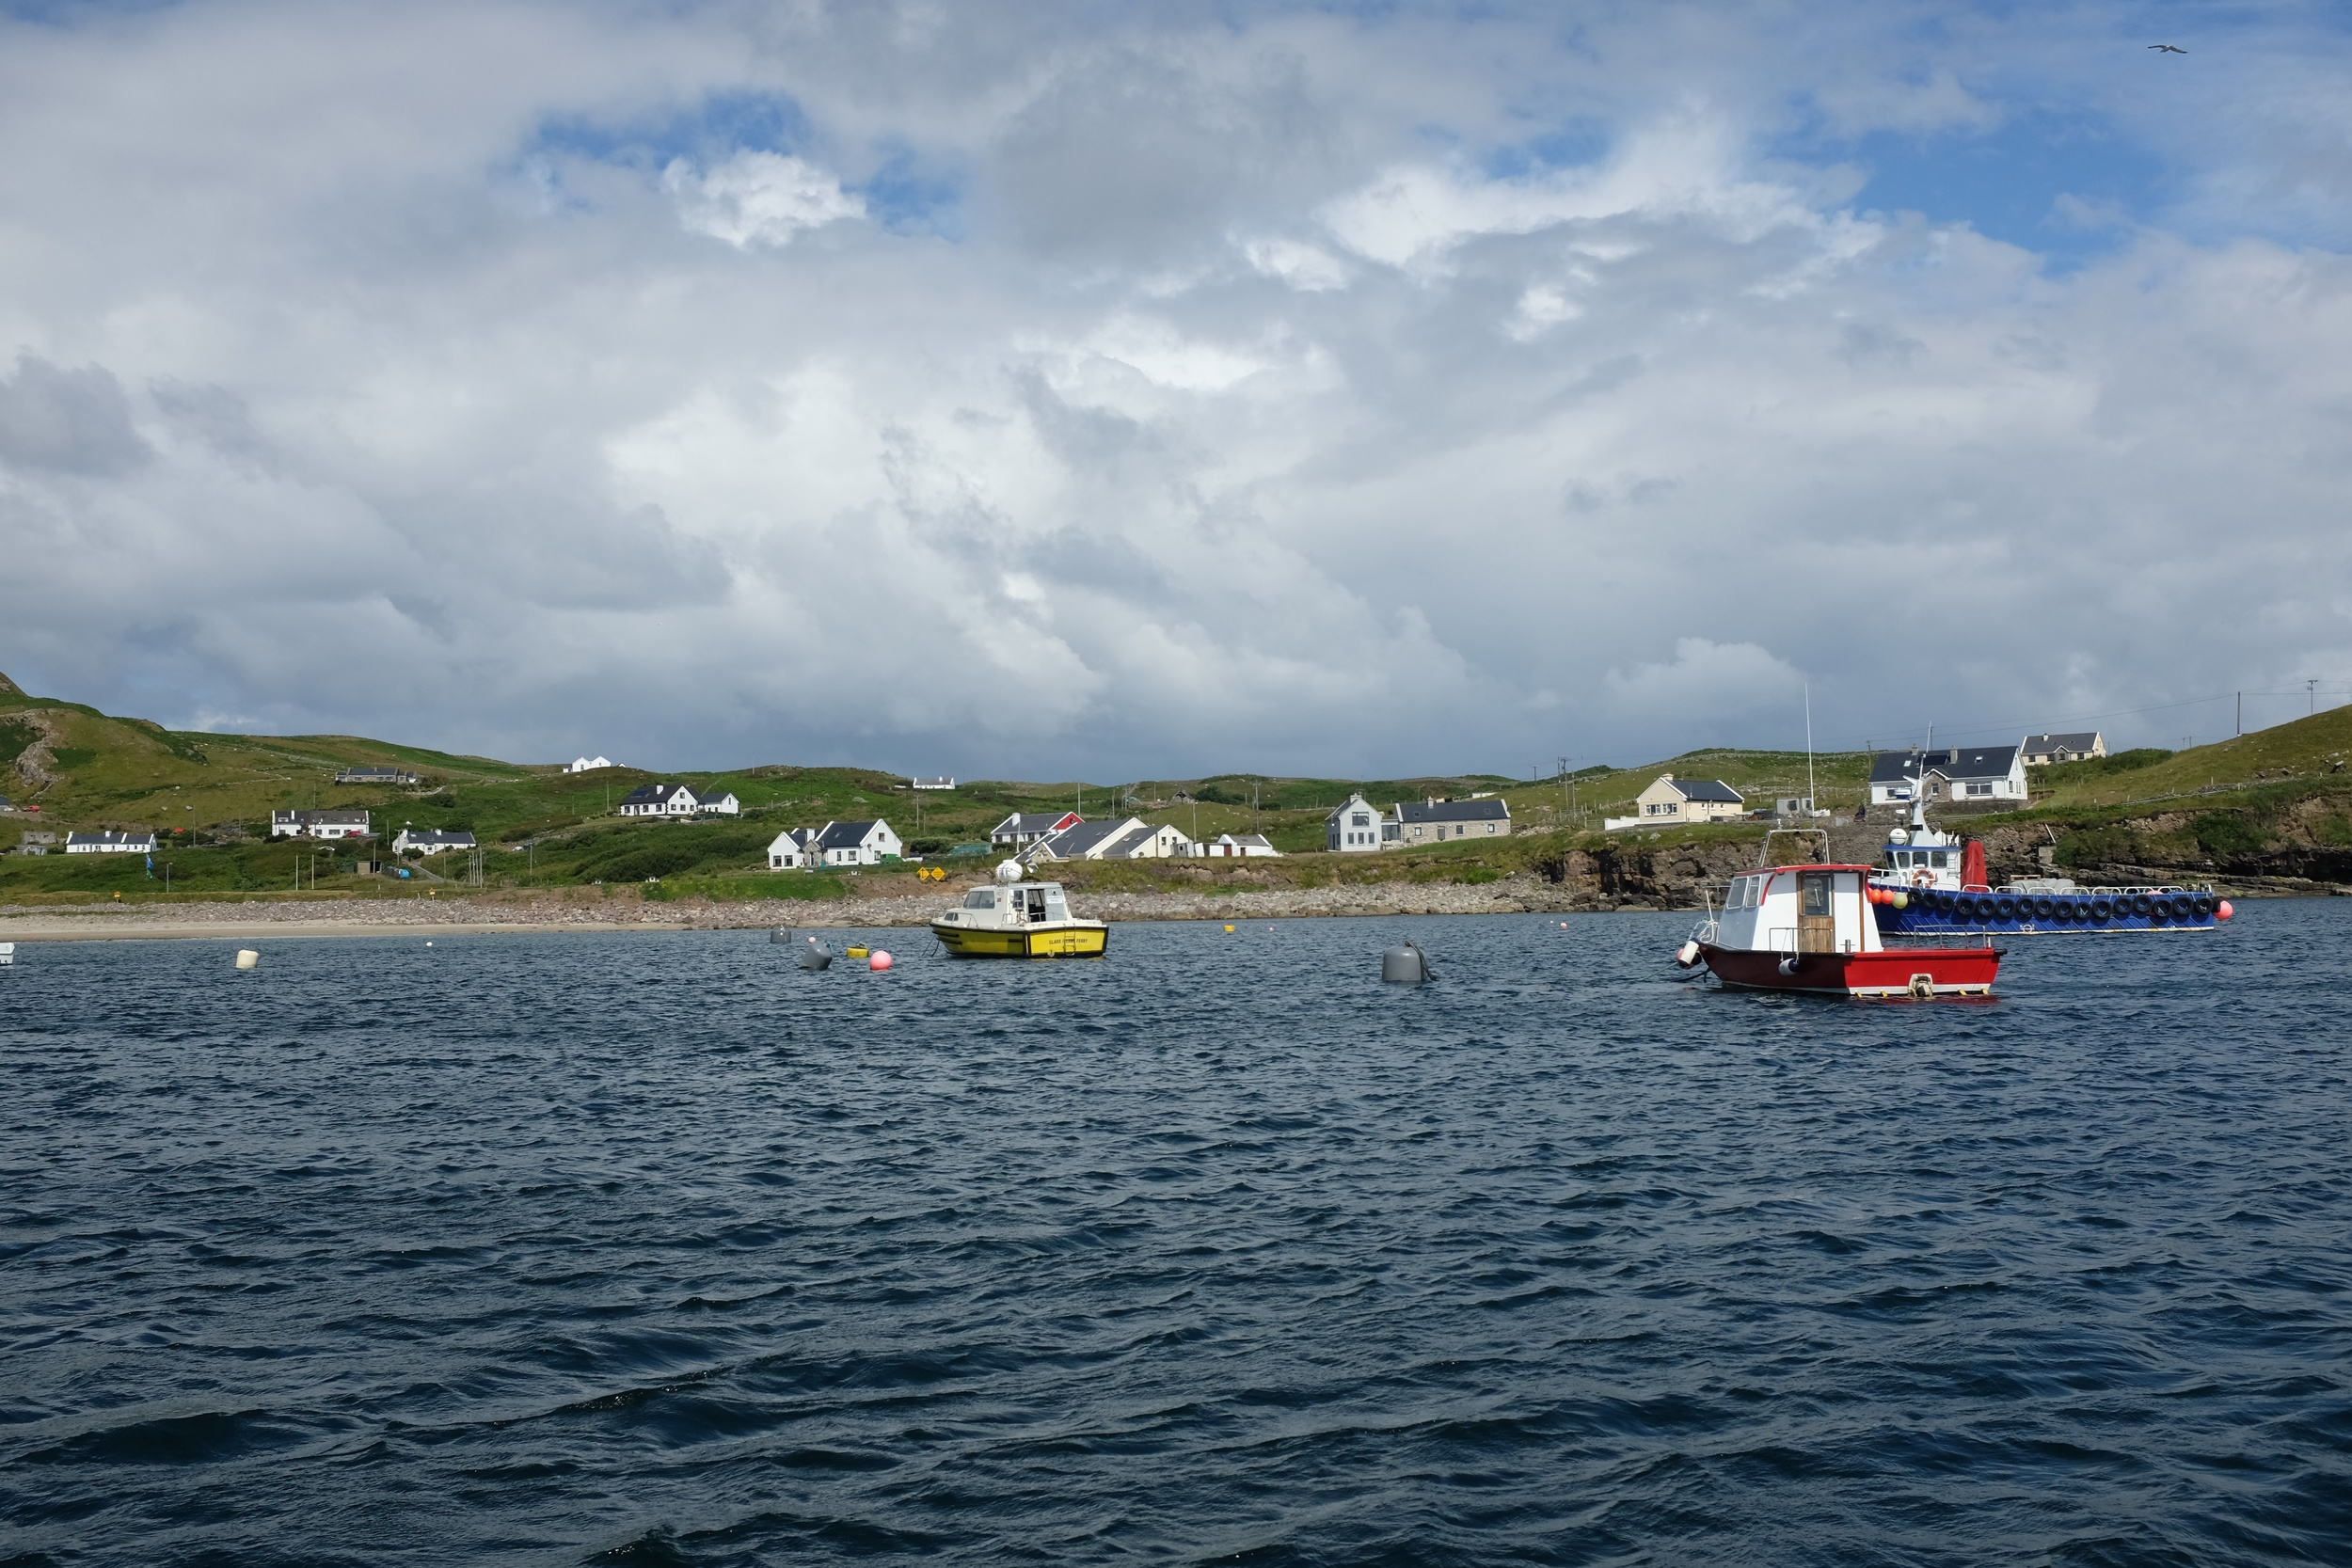 View of Clare Island Harbour from the ferry